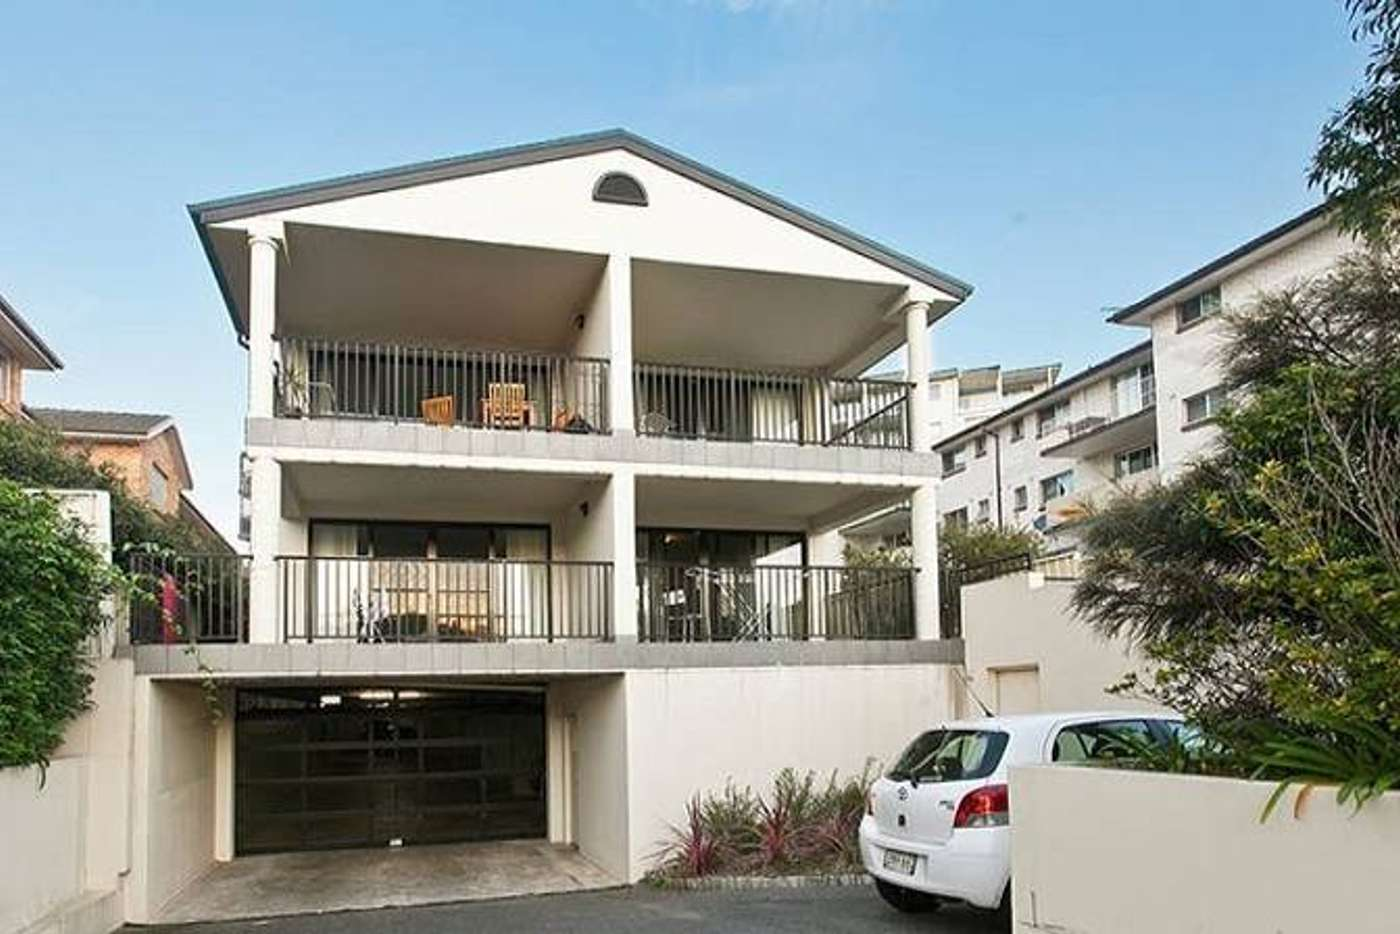 Main view of Homely unit listing, 3/27 Mercury Street, Wollongong NSW 2500